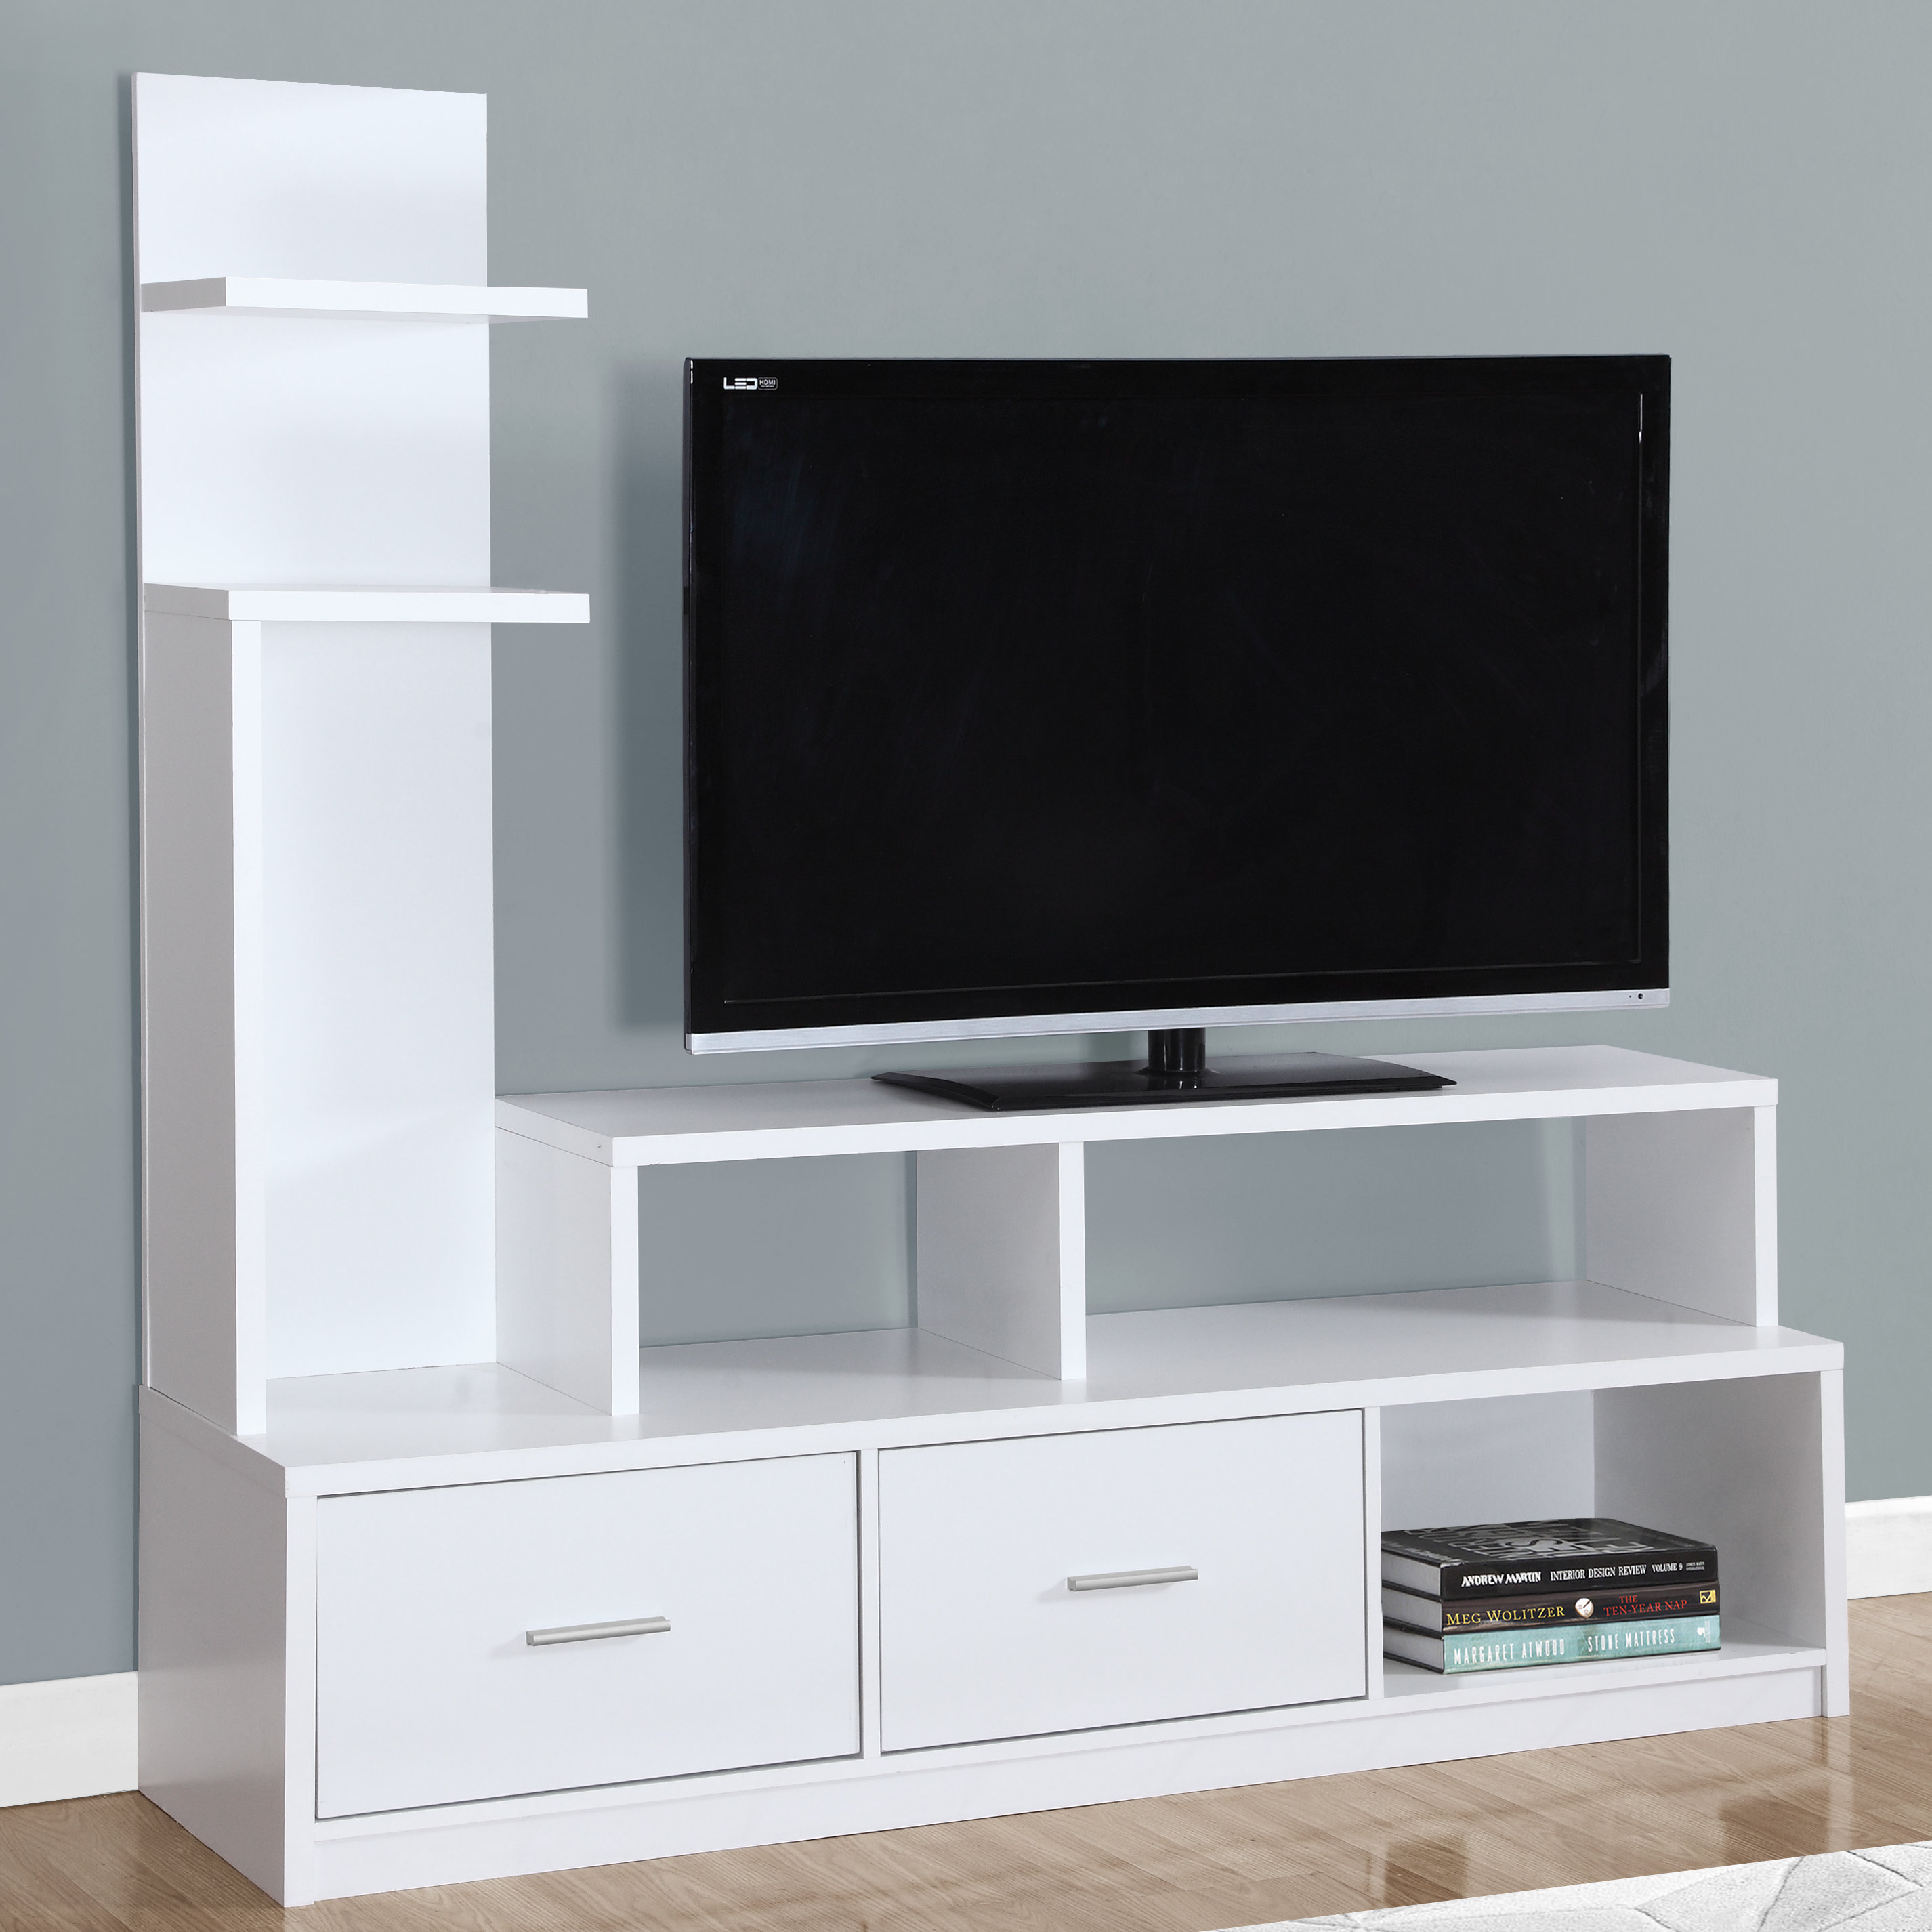 36 Inch Tall Tv Stand | Wayfair Within Edwin Black 64 Inch Tv Stands (Photo 11 of 30)